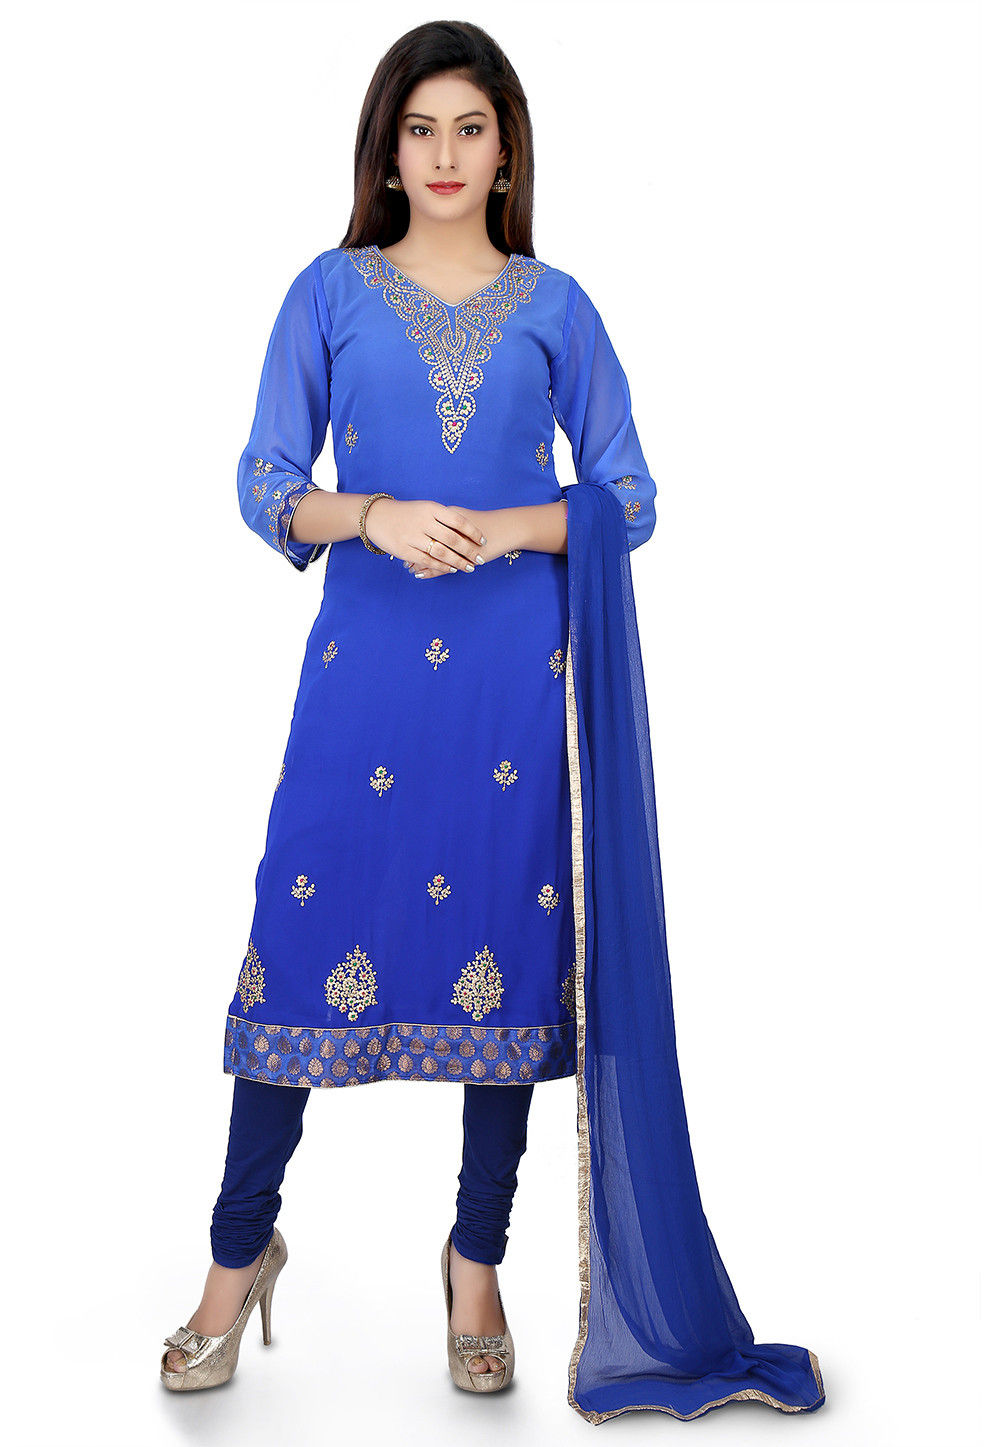 Embroidered Georgette Straight Suit in Blue Ombre